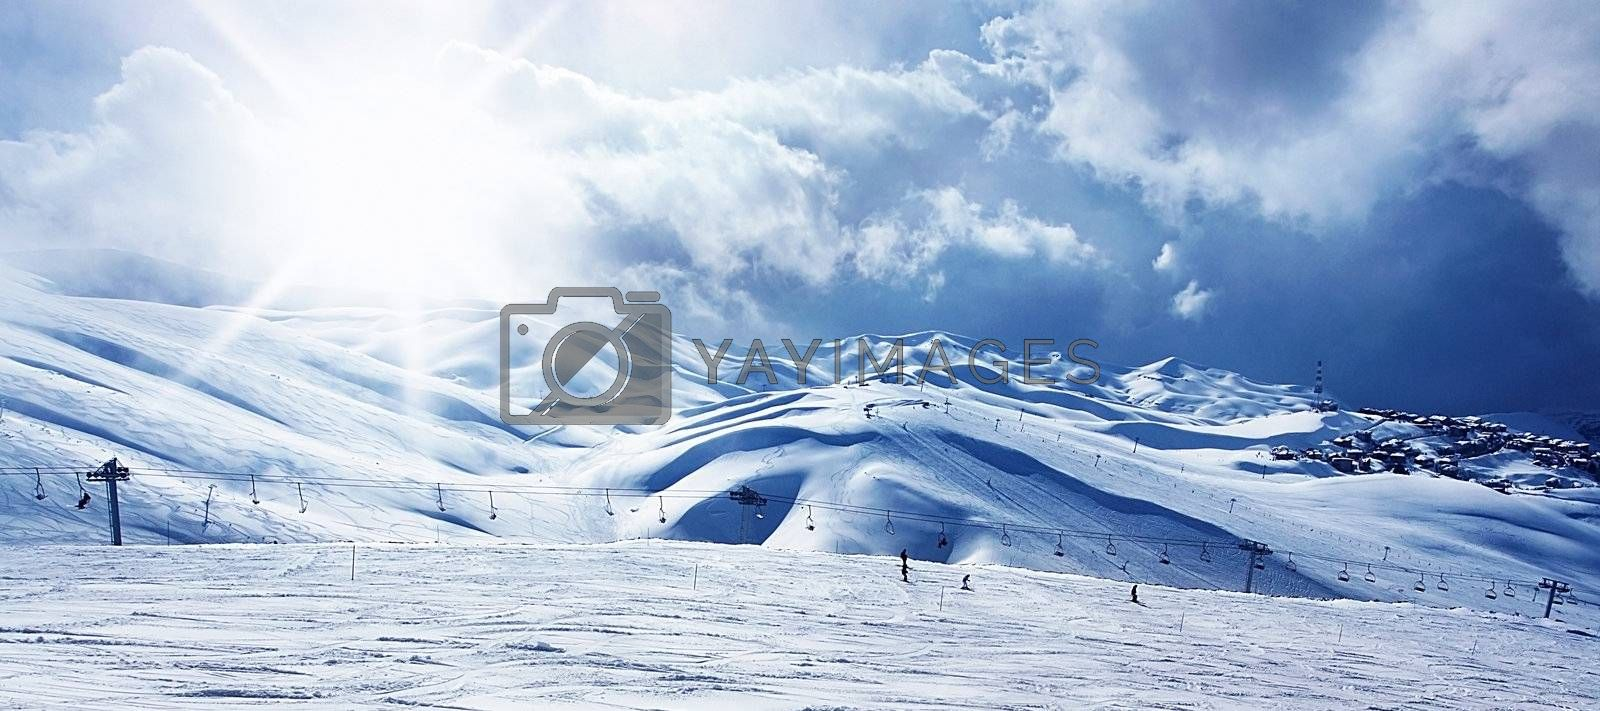 Winter mountain ski resort panoramic landscape with snow, sunny sky and chairlift